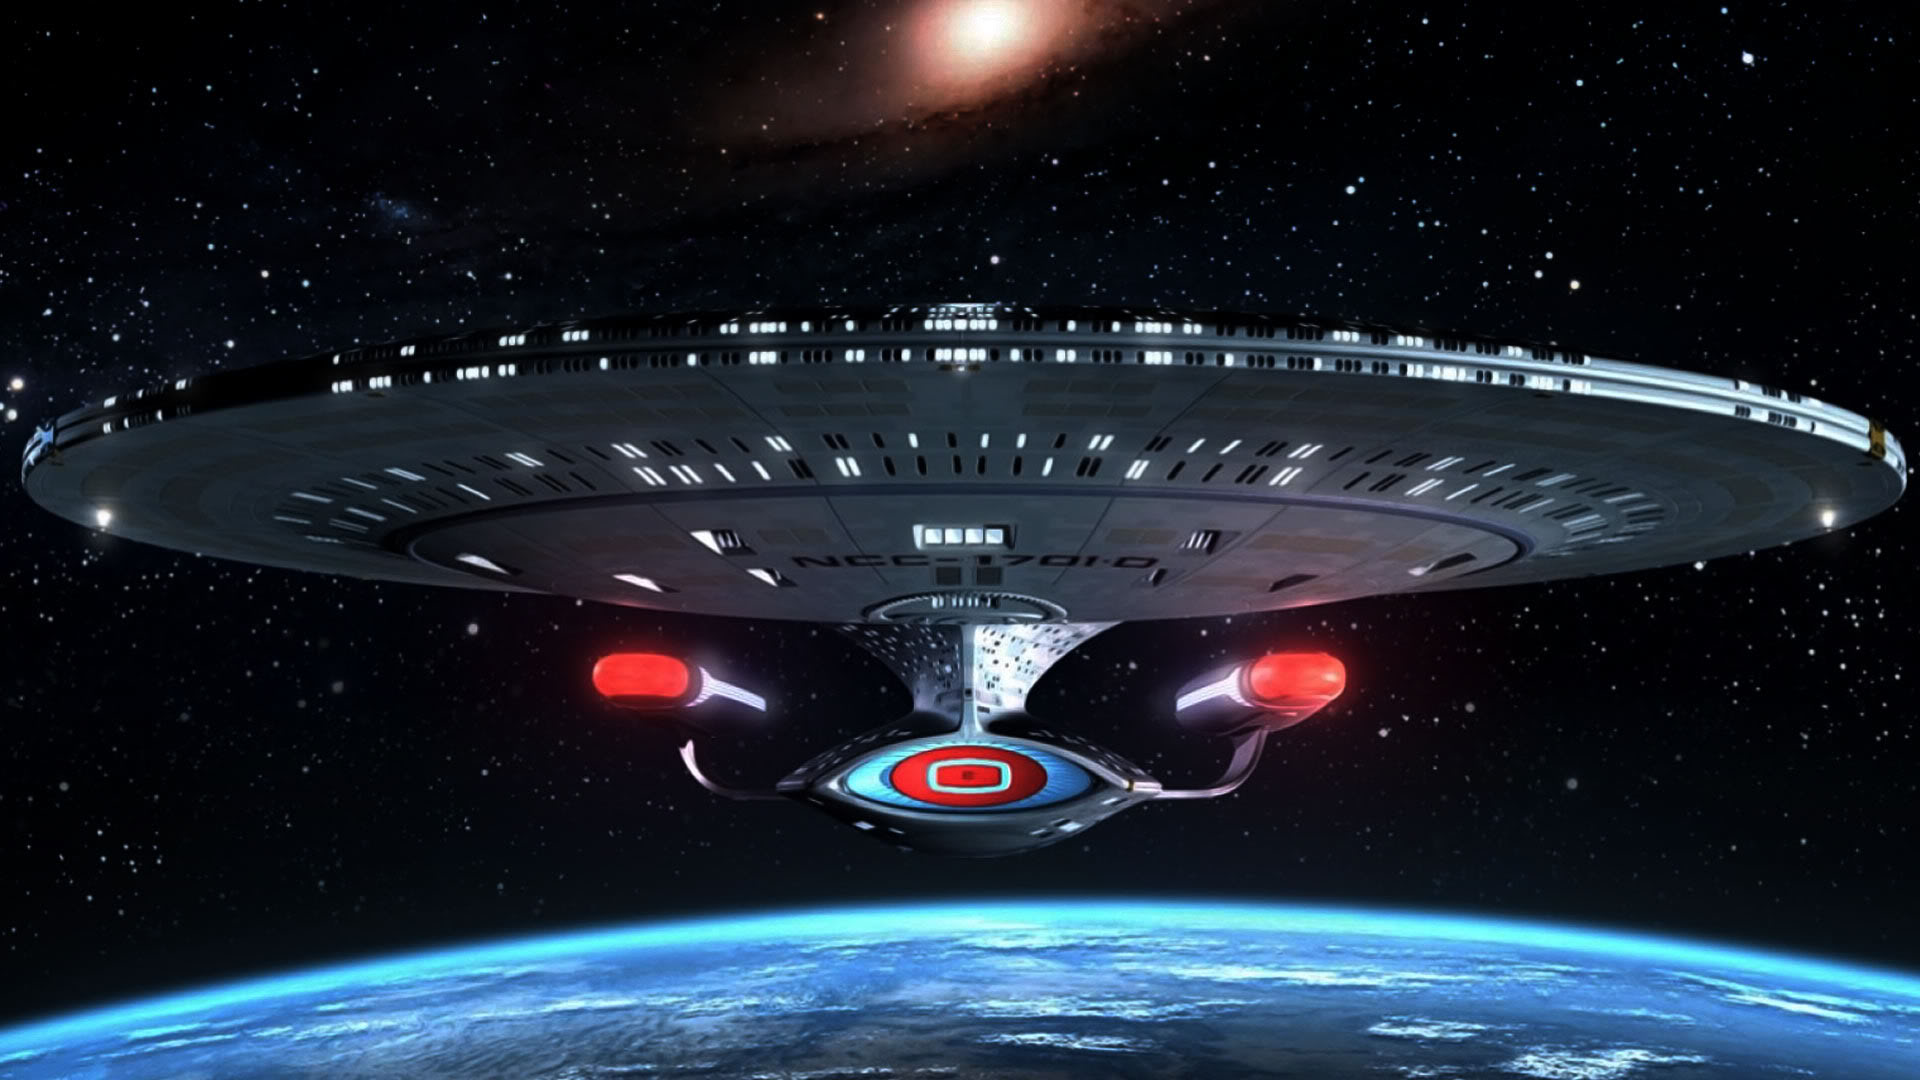 NCC-1701-D In Orbit Wallpapers